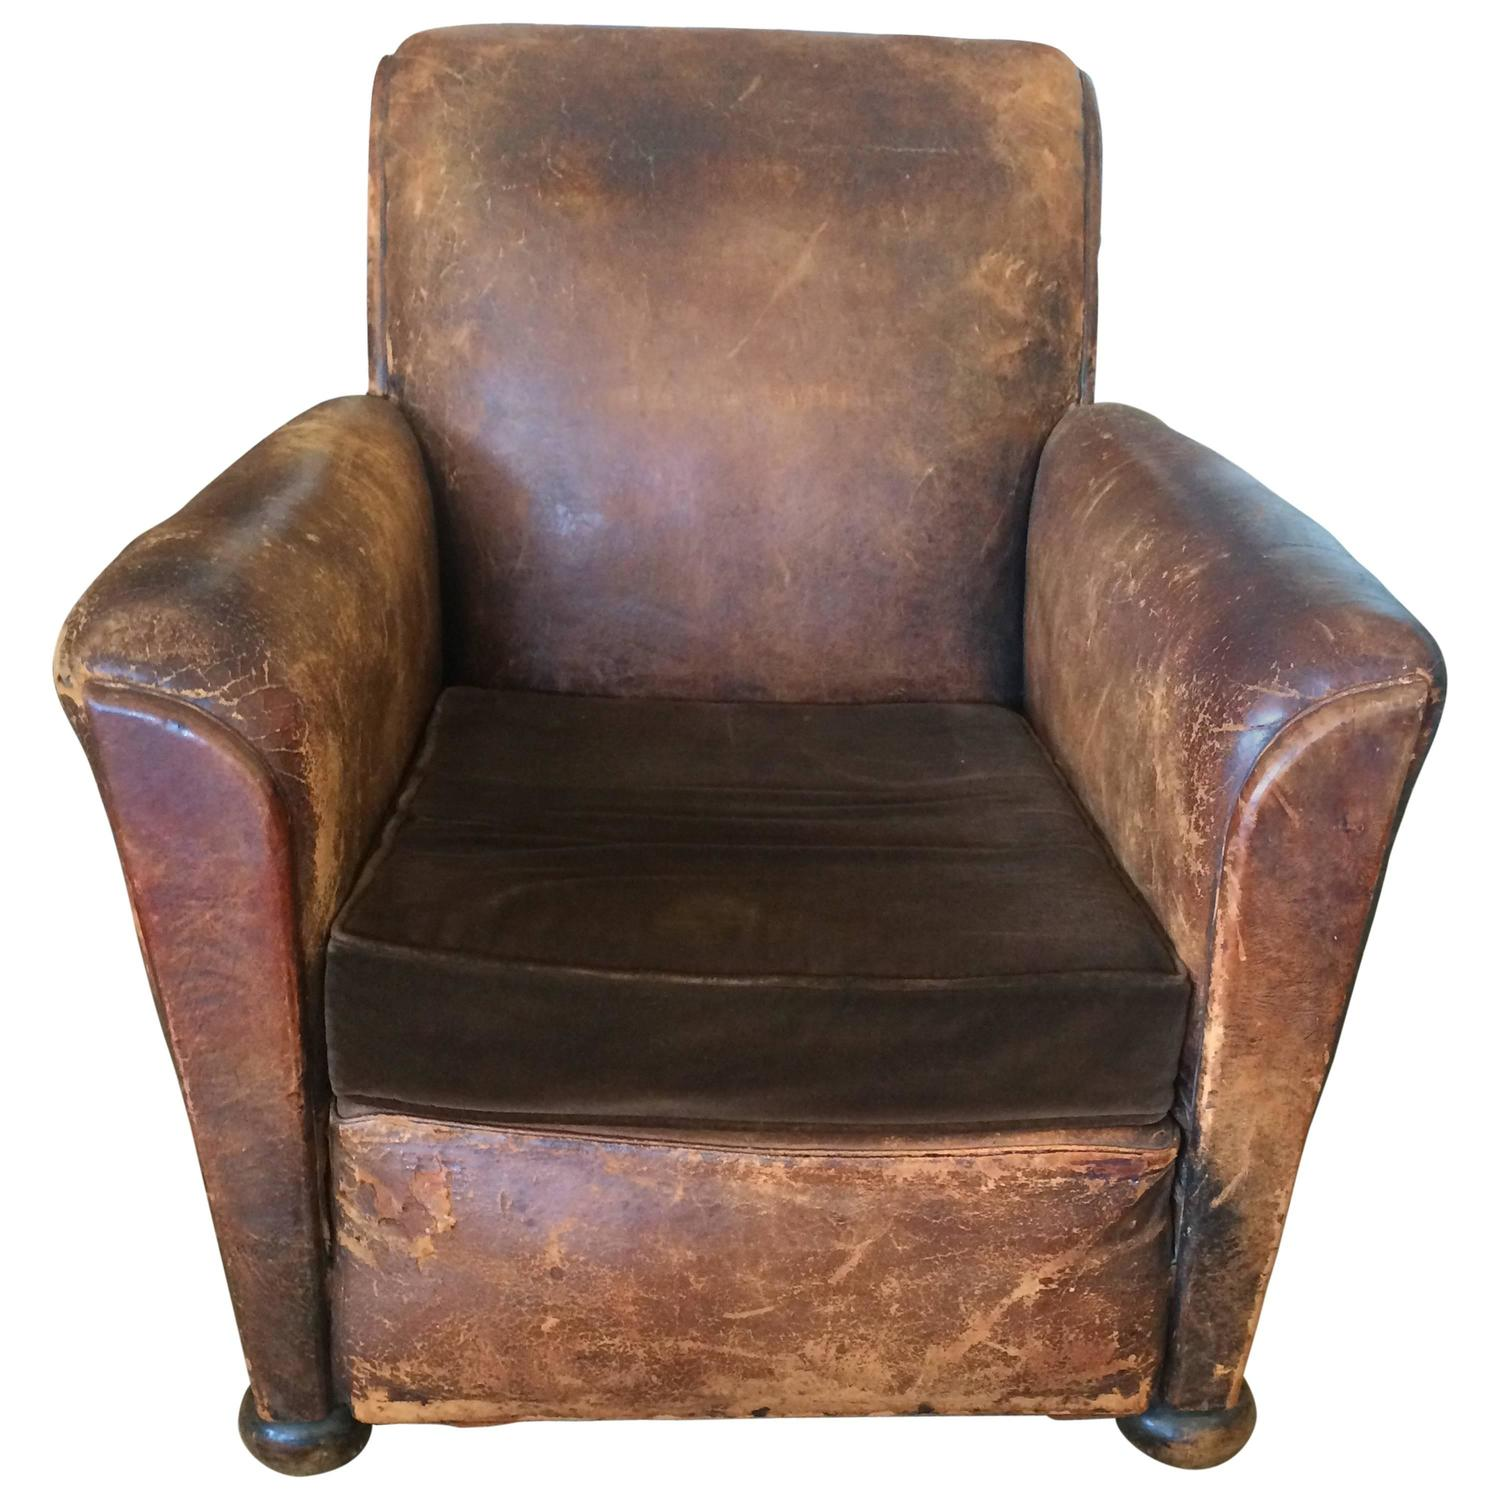 leather club chairs for sale 24 hour office canada yummy distressed and velvet french chair